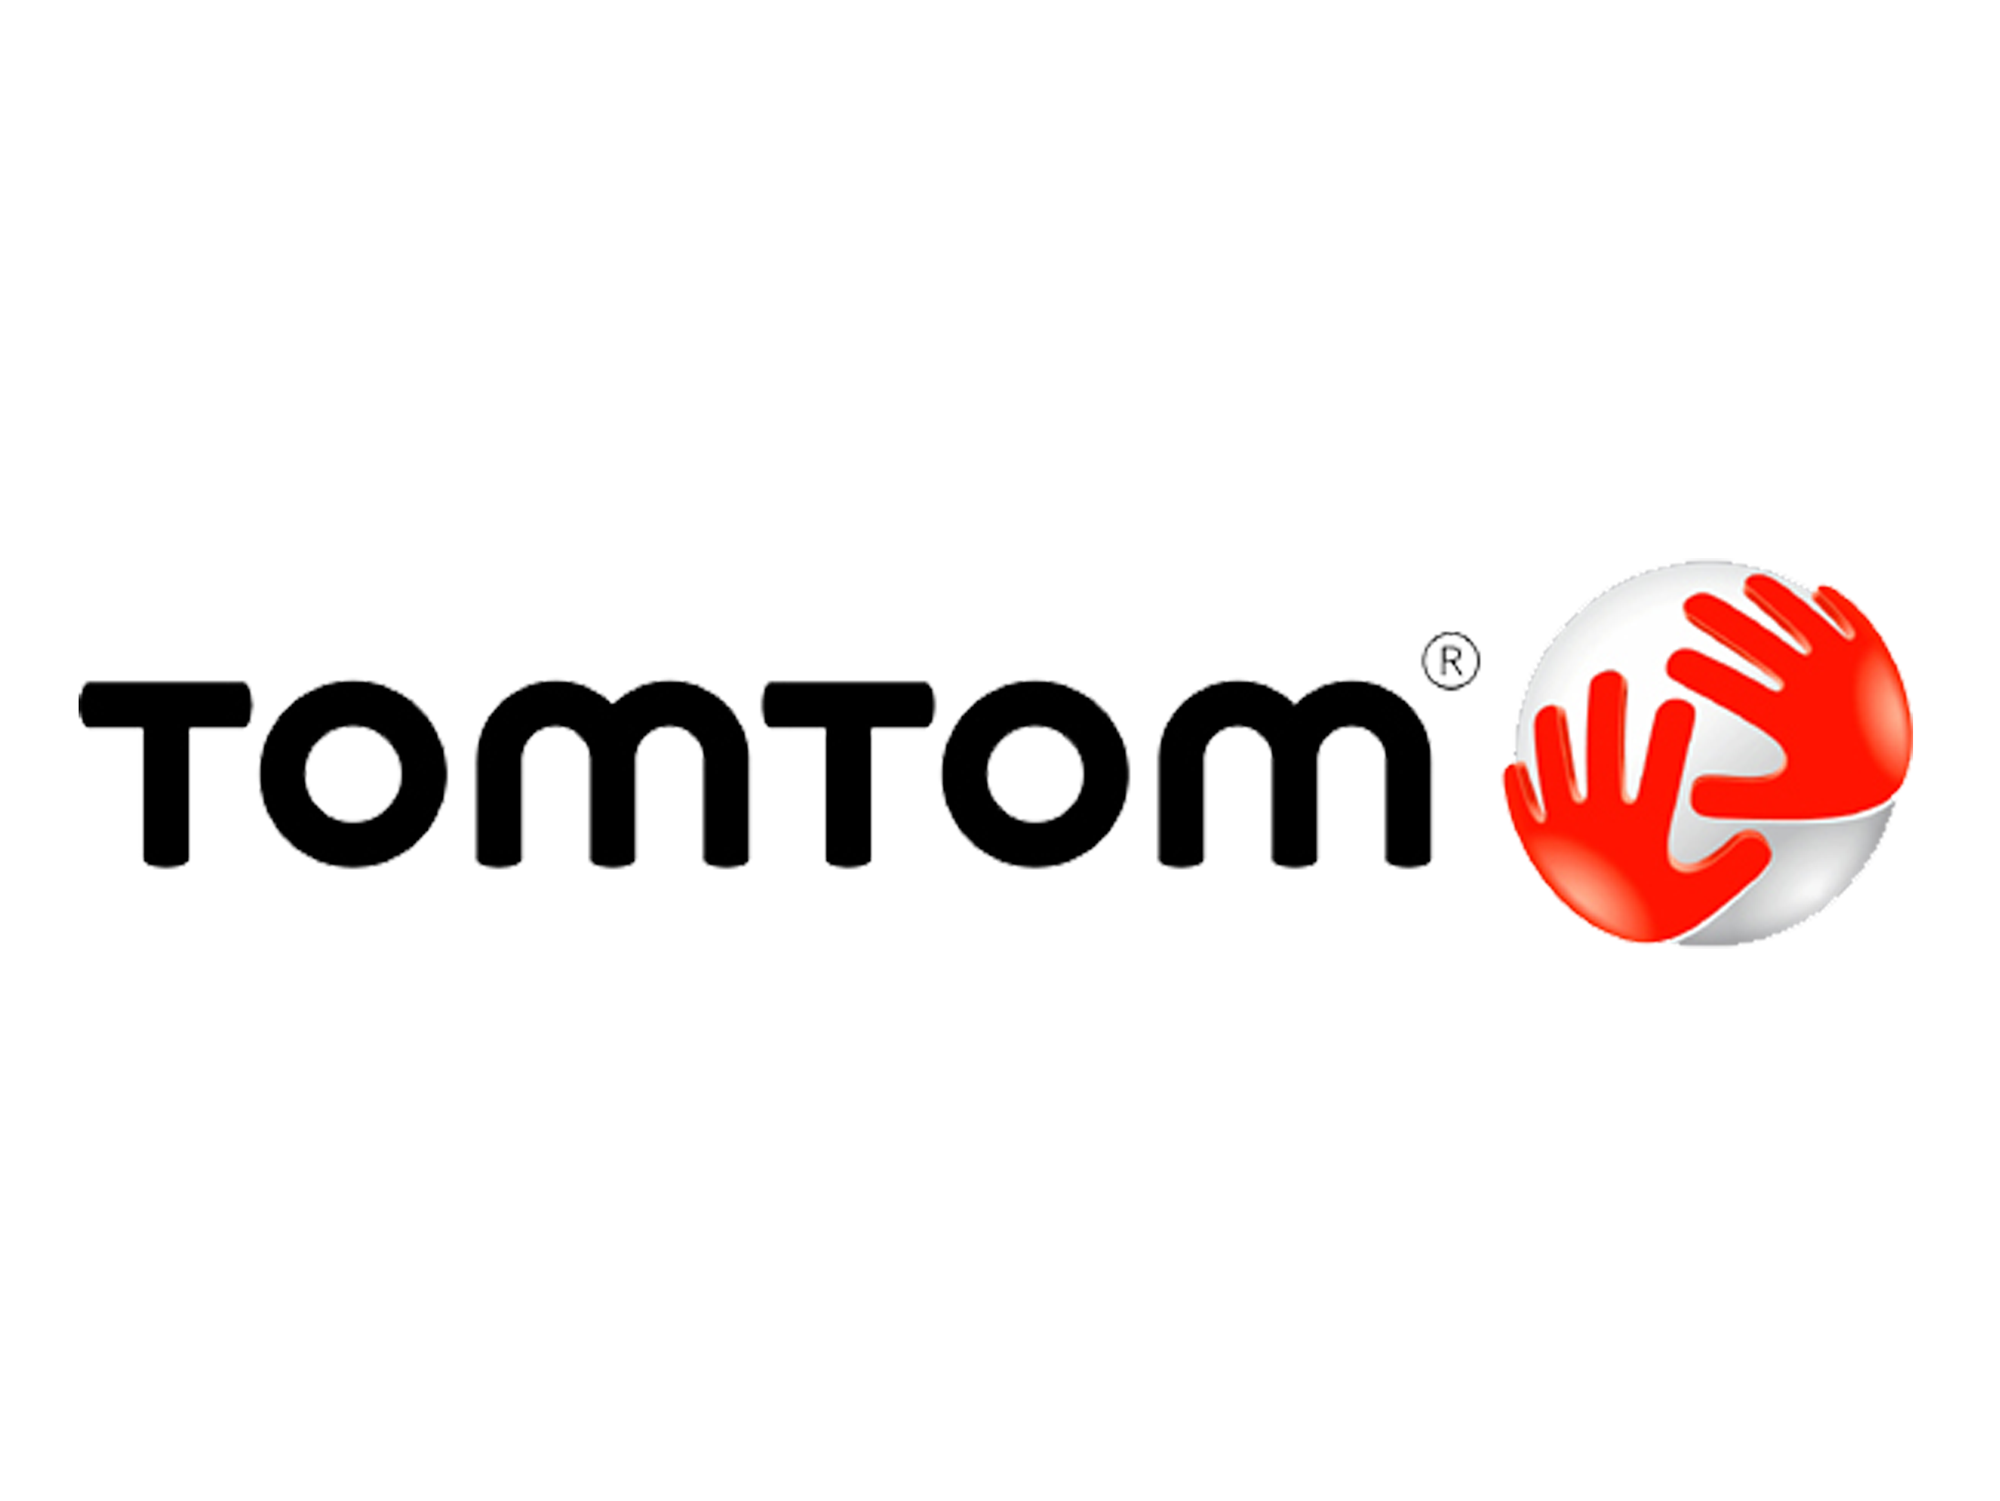 TomTom GO Mobile Is A New Freemium Navigation App - Tomtom gps usa map download free